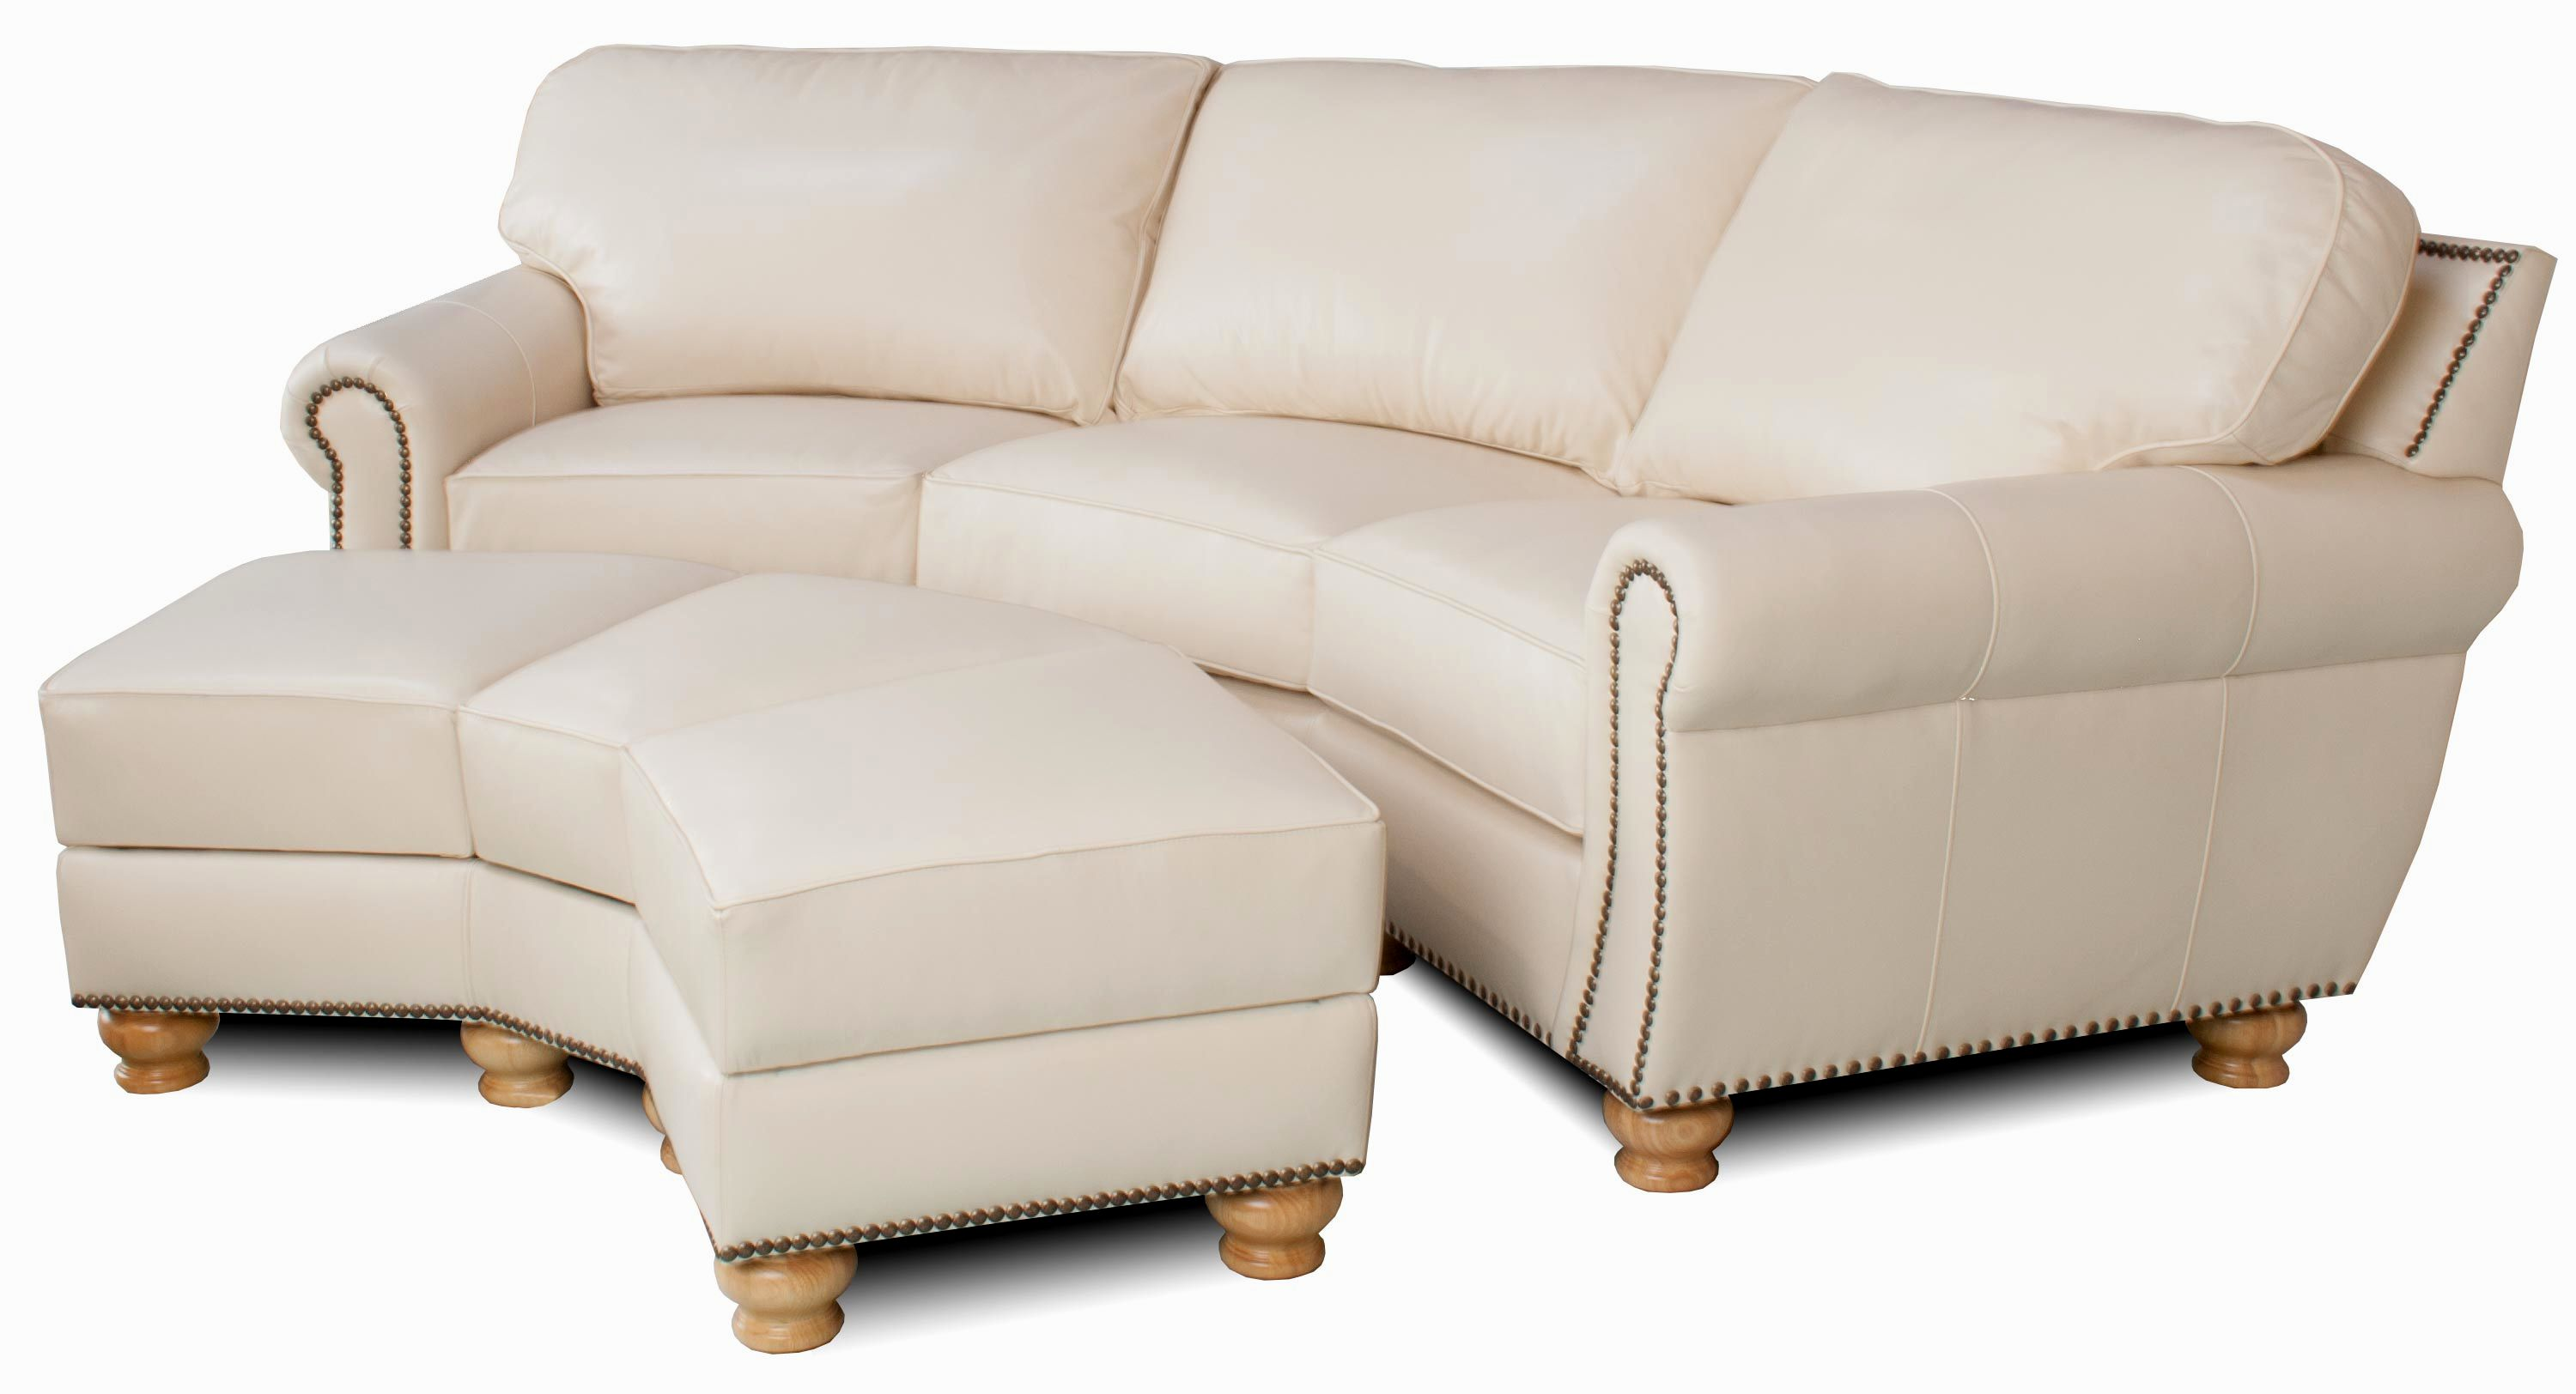 wonderful small sectional sofa with chaise picture-Lovely Small Sectional sofa with Chaise Gallery